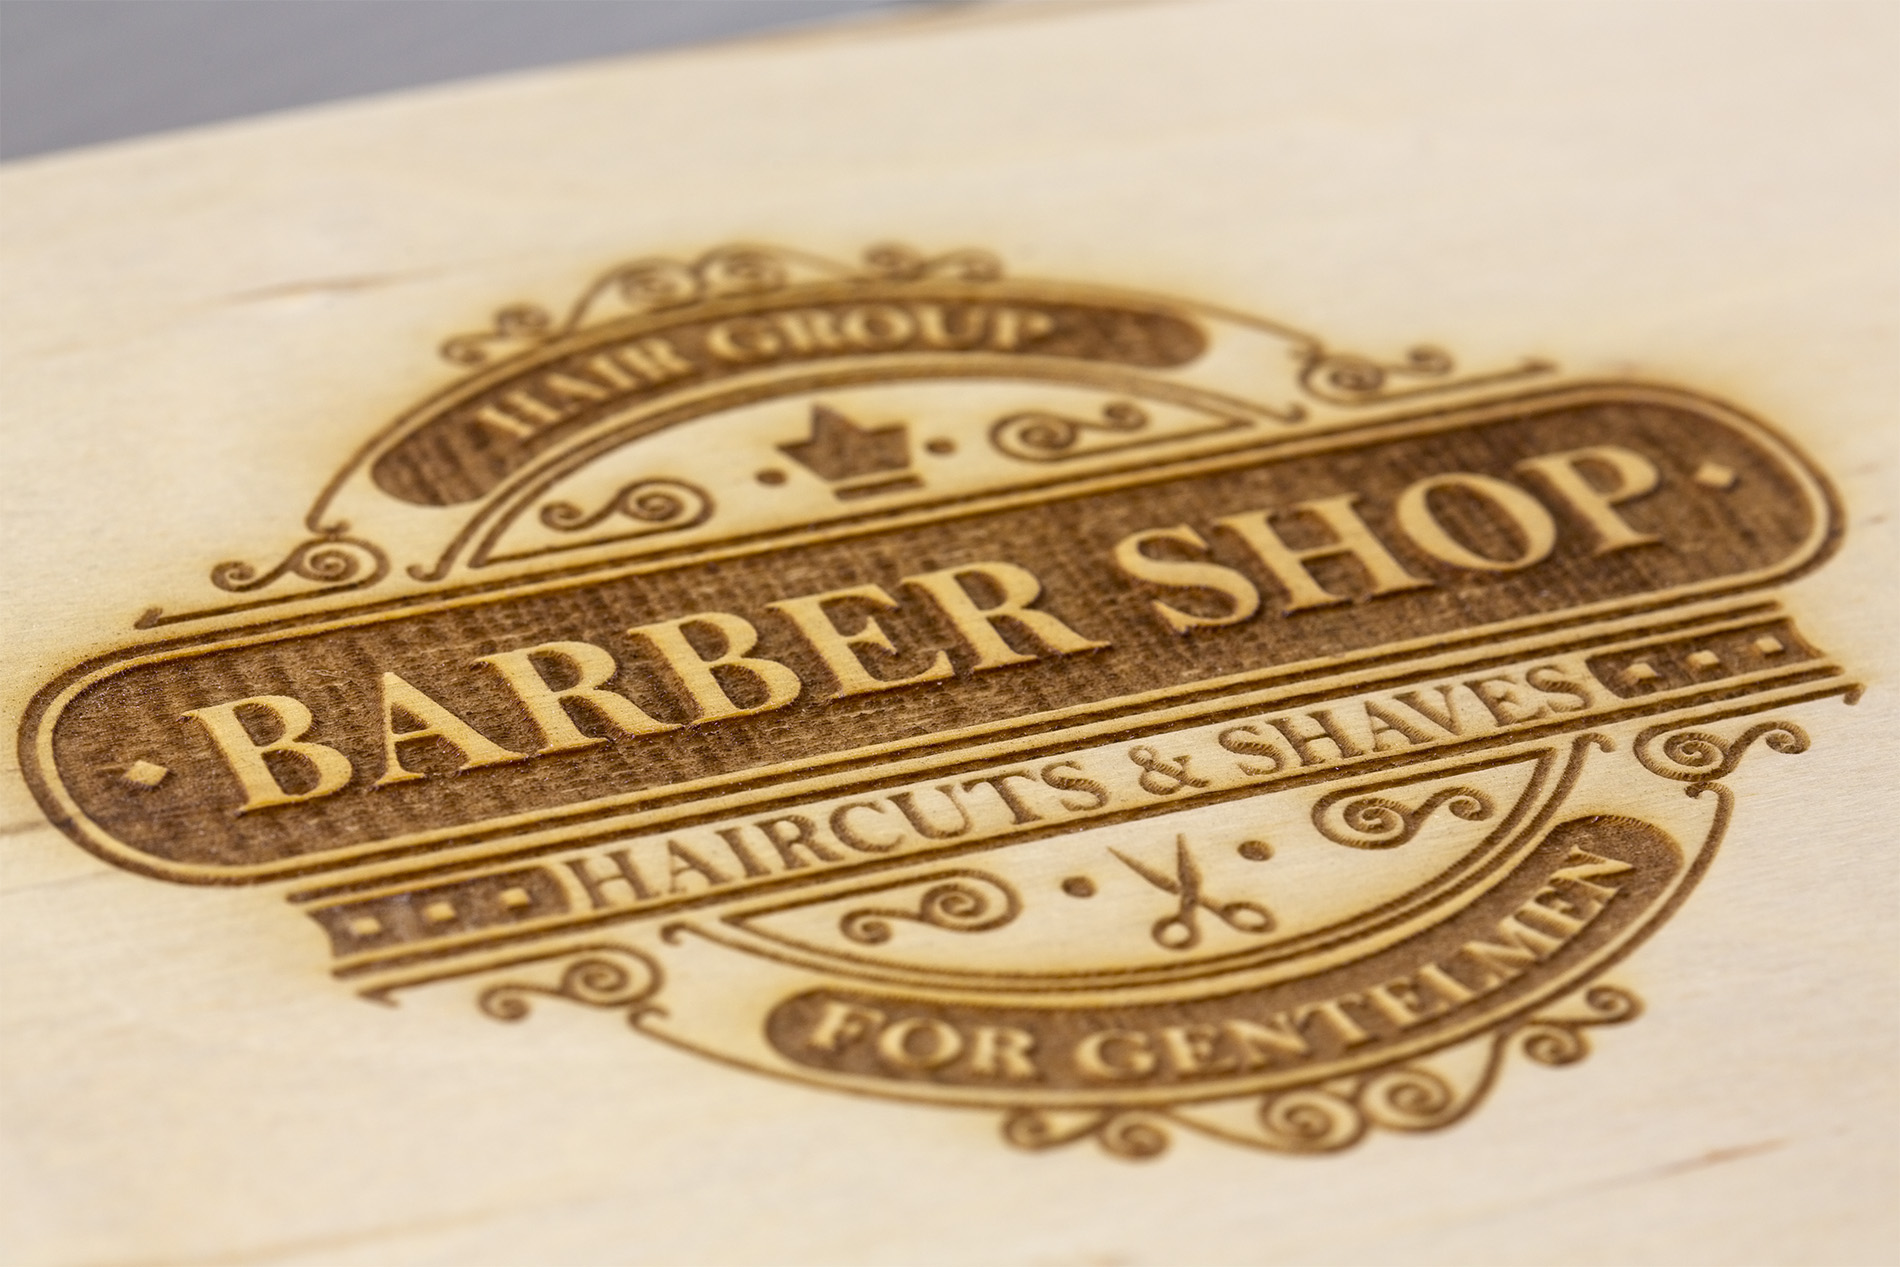 Logo Inciso Al Laser Barber Shop